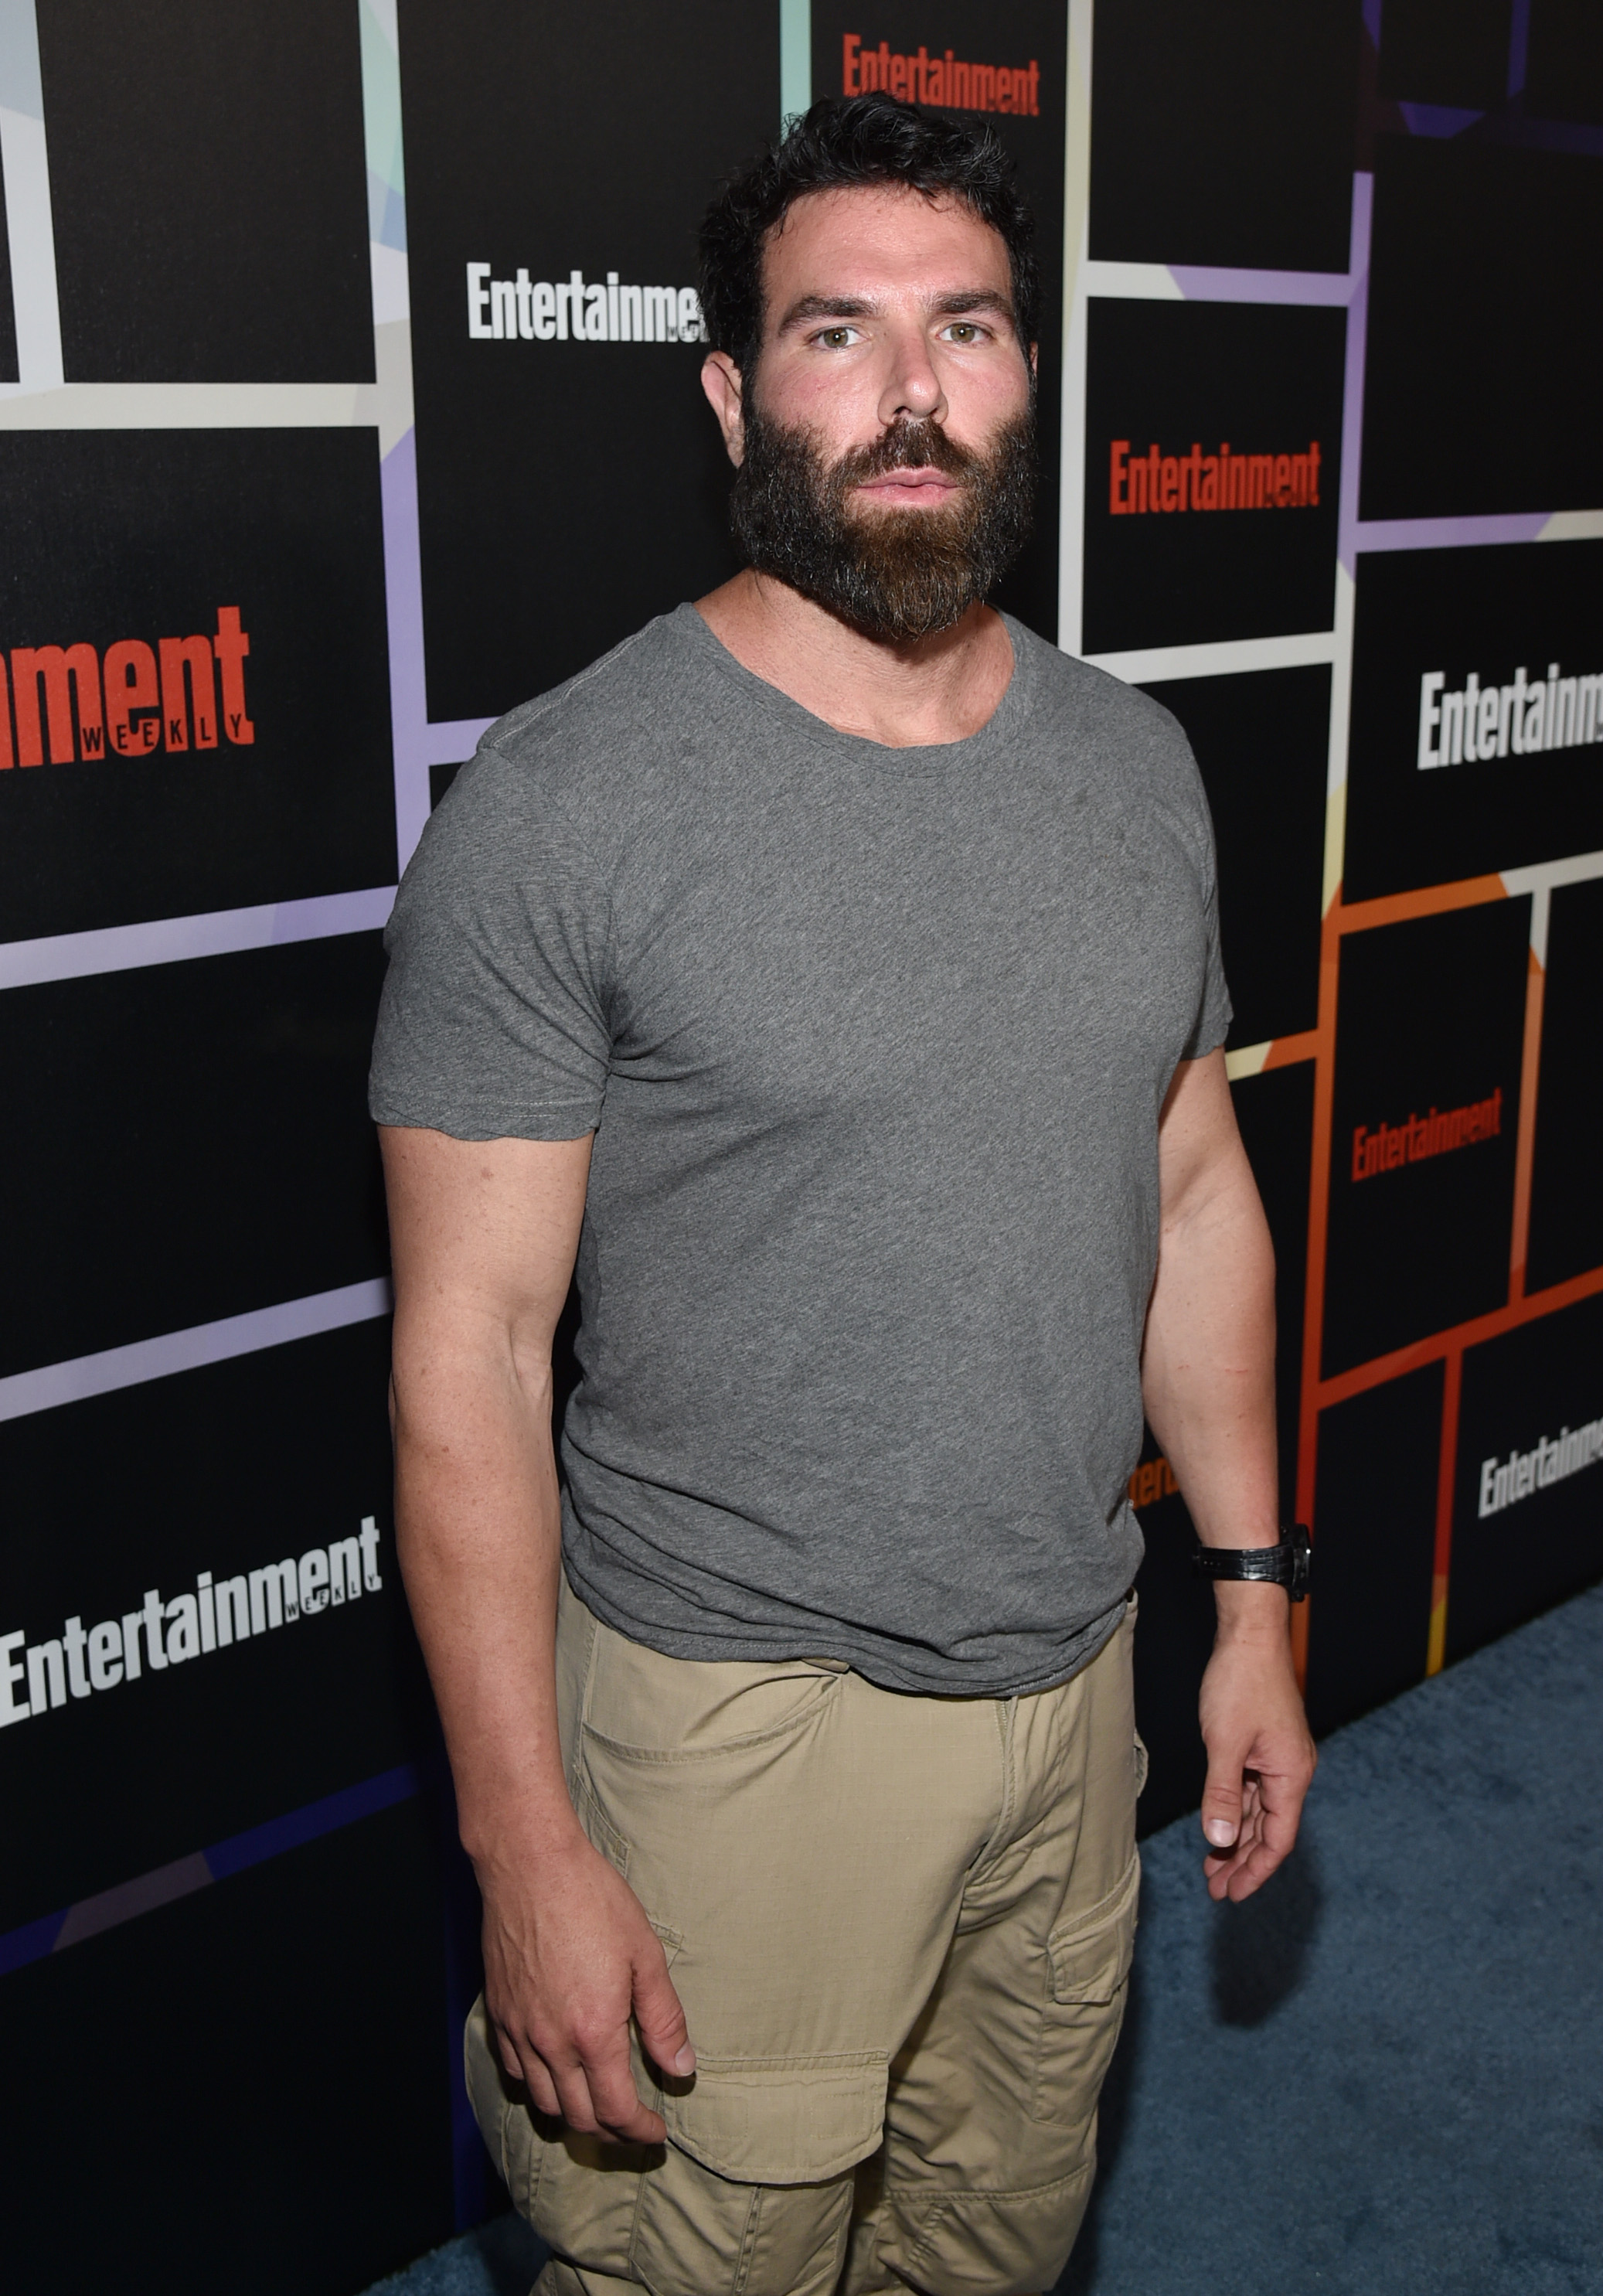 Dan Bilzerian arrives at Entertainment Weekly's Annual Comic-Con Closing Night Celebration in San Diego on July 26, 2014.